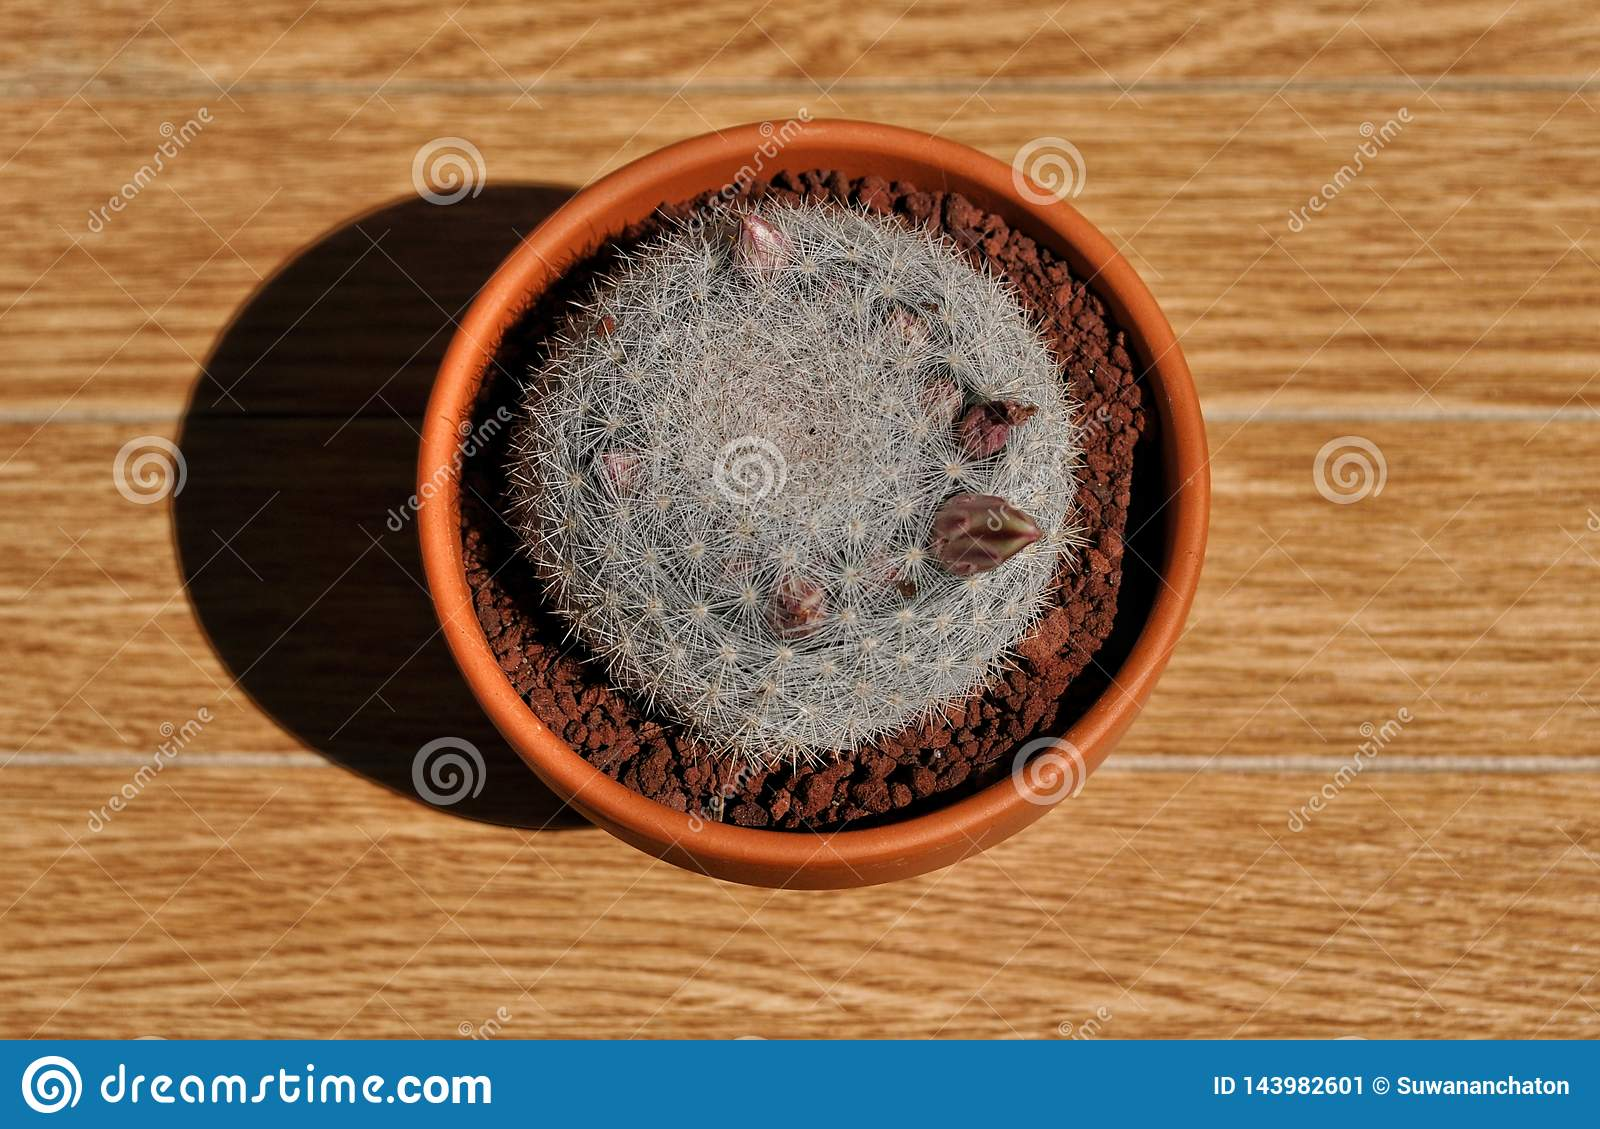 Mammillaria candida in a pot